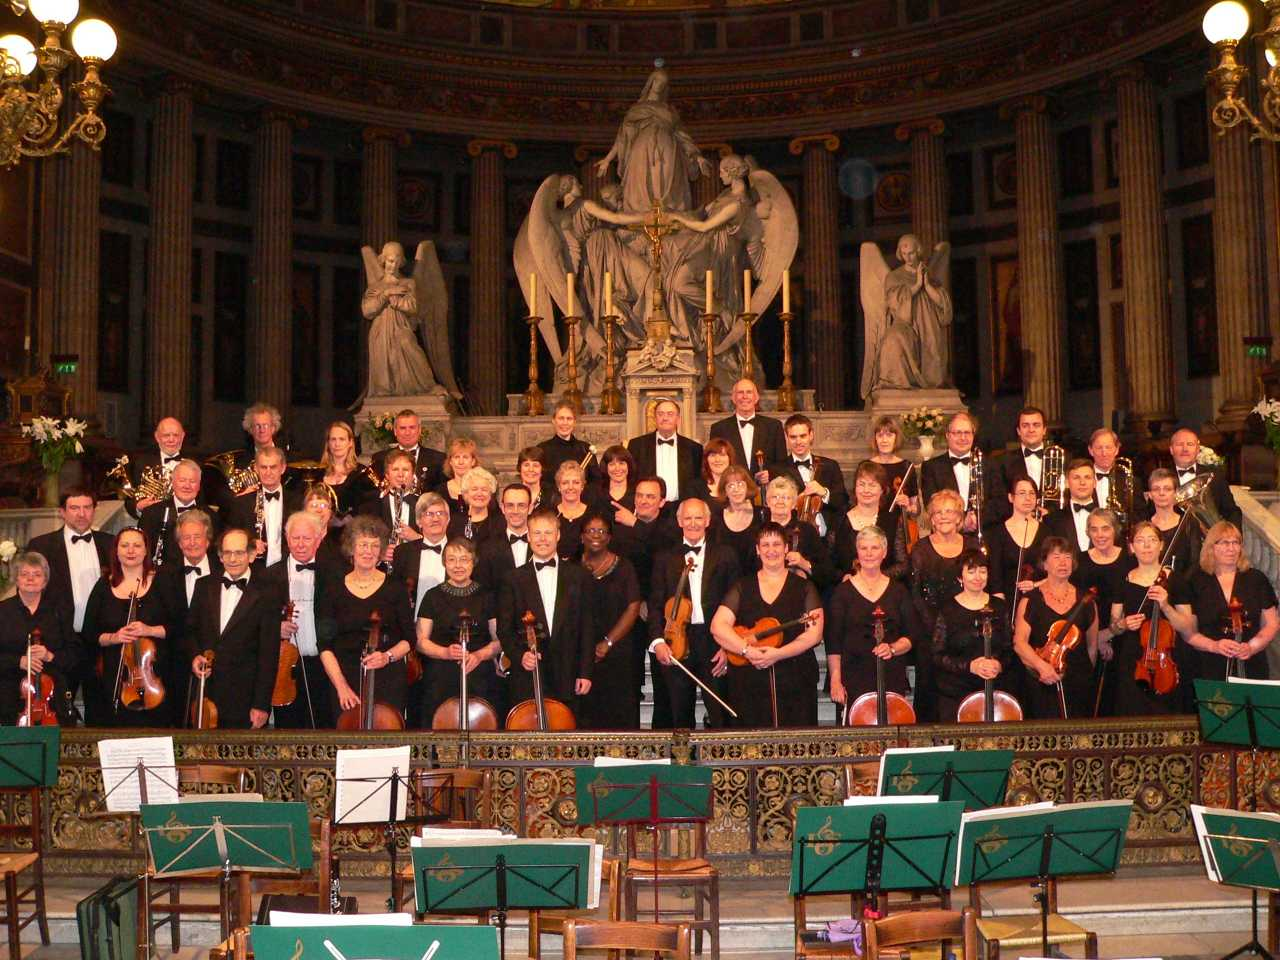 The orchestra in the Eglise de la Madeleine, Paris